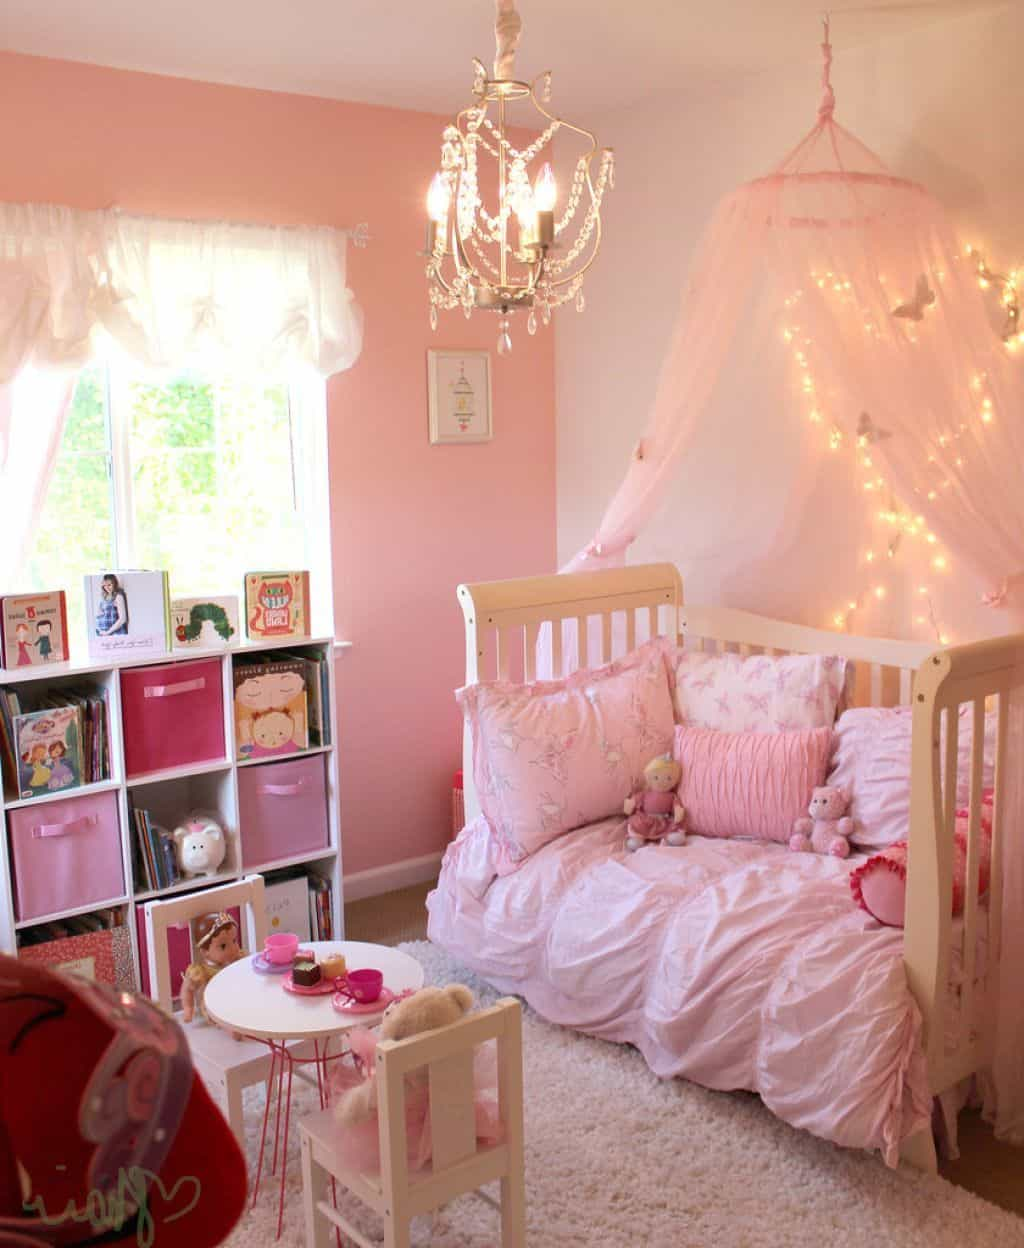 Girly Princess Bedroom Ideas: 32 Cheery Designs For A Little Girl's Dream Bedroom